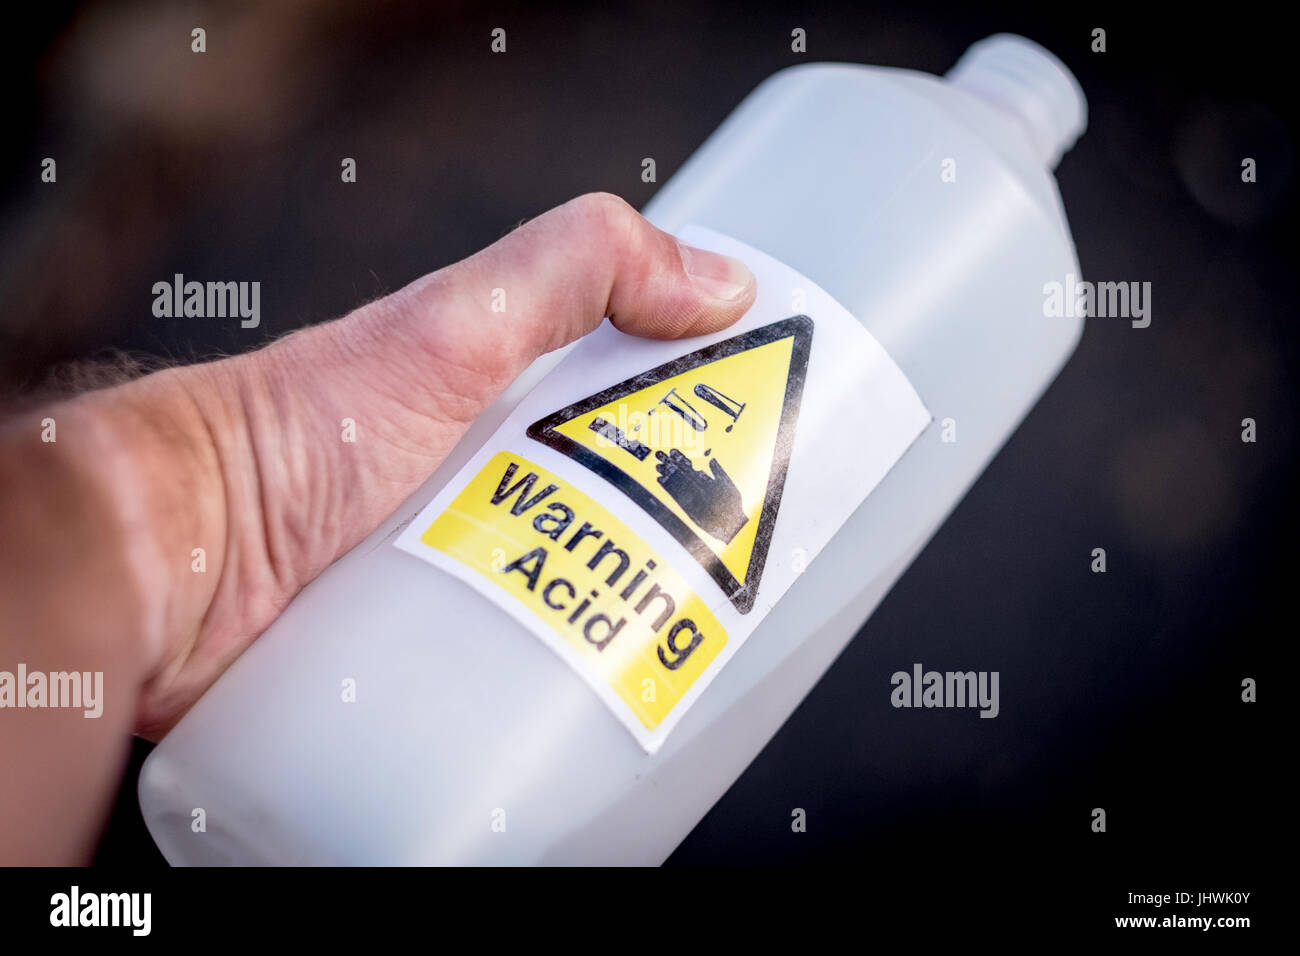 Acid Attack, A man holding an acid bottle in the street - Stock Image